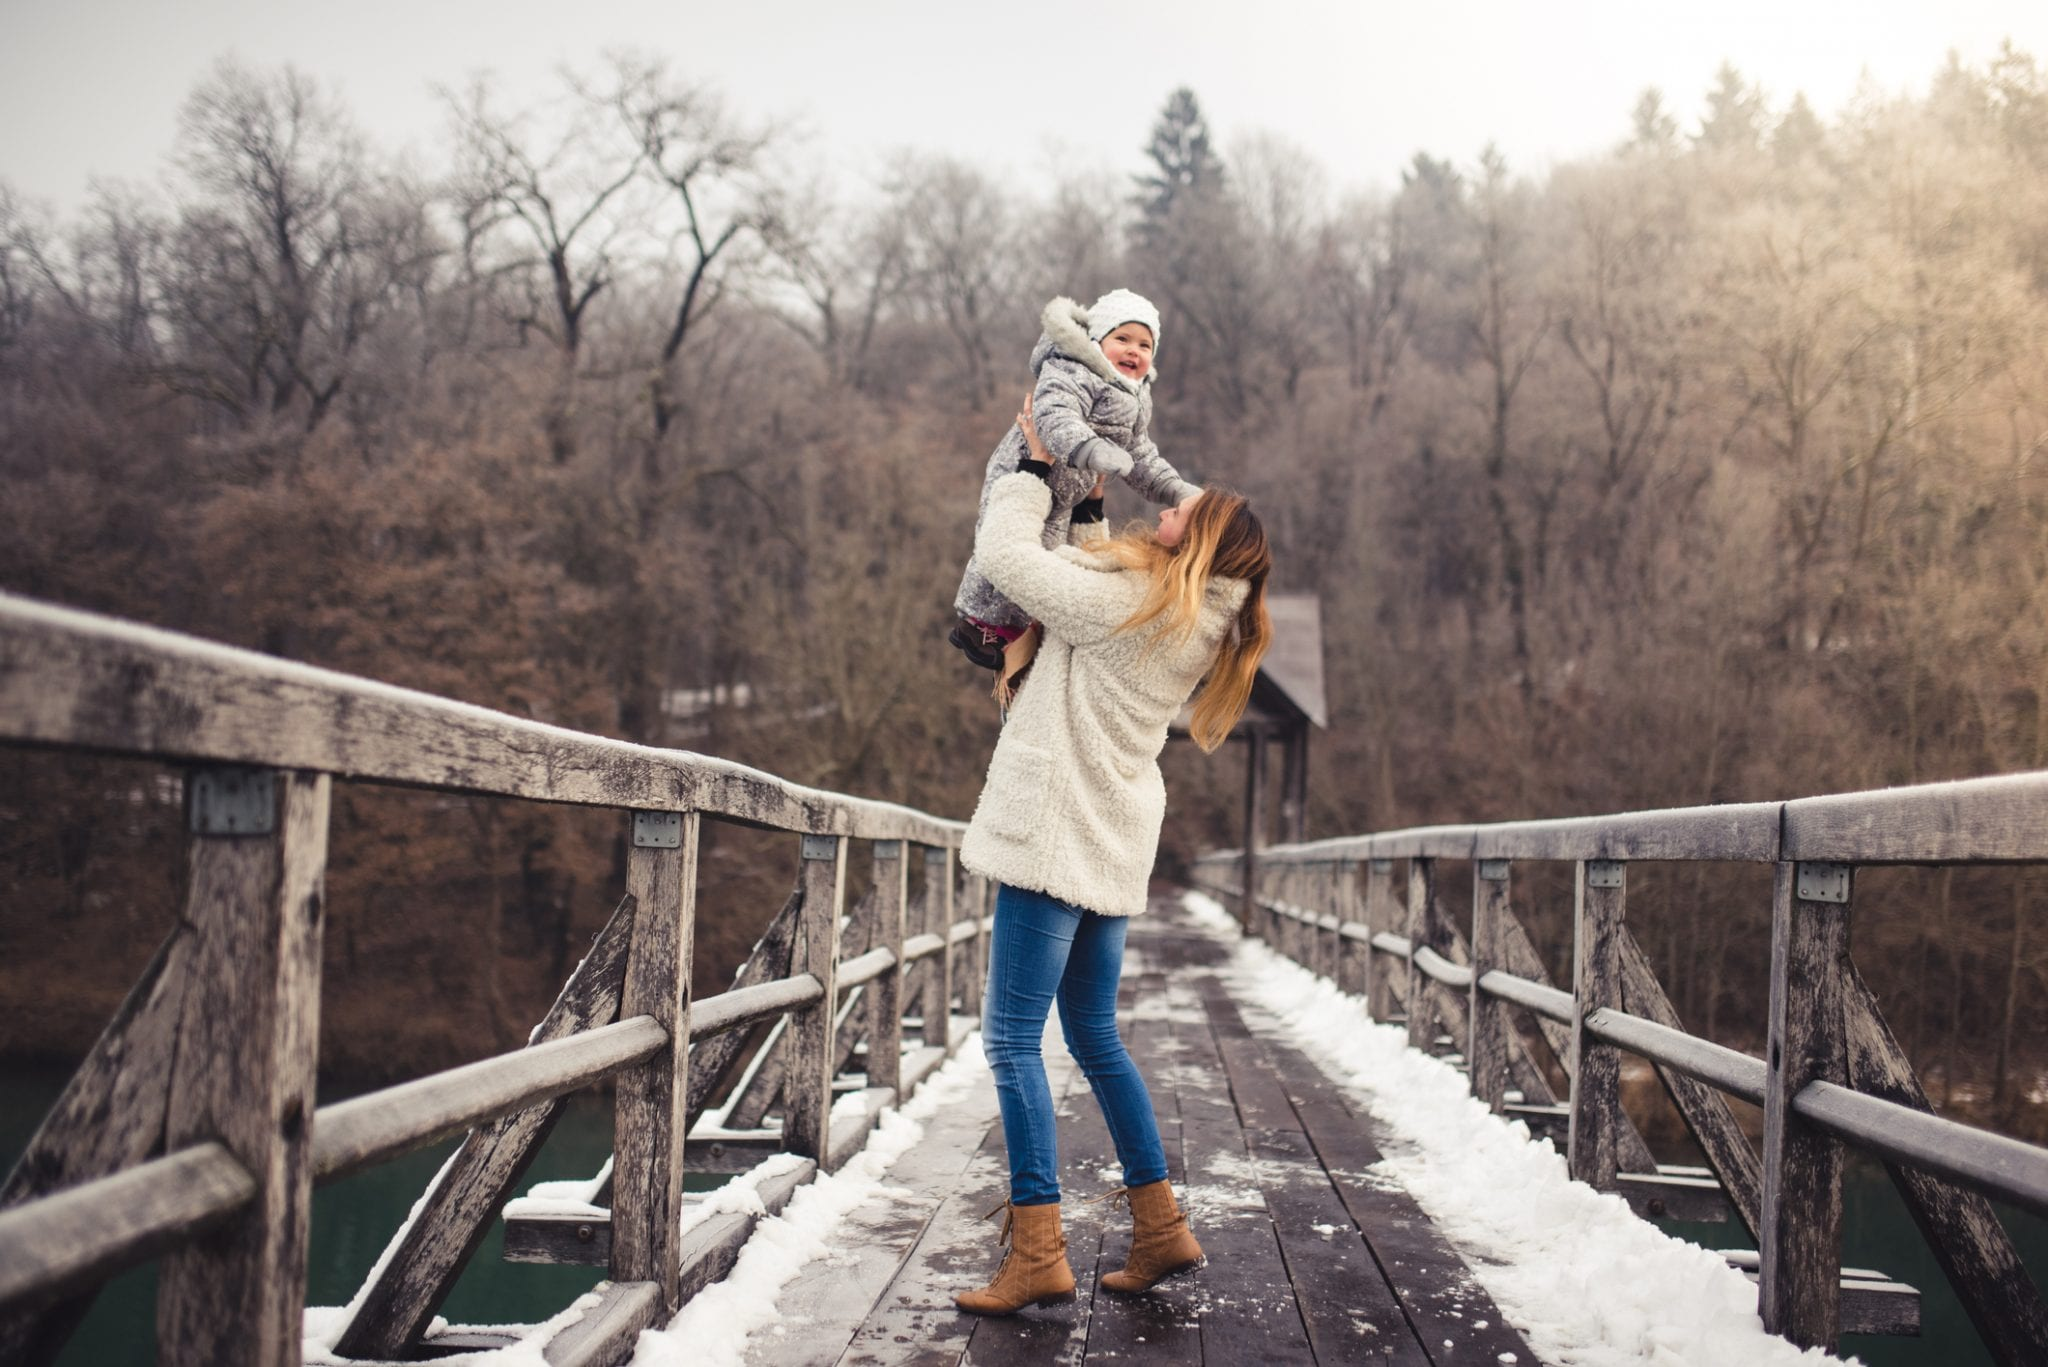 Winter Time: Finding Joy in the Simple Stuff | Baby Chick